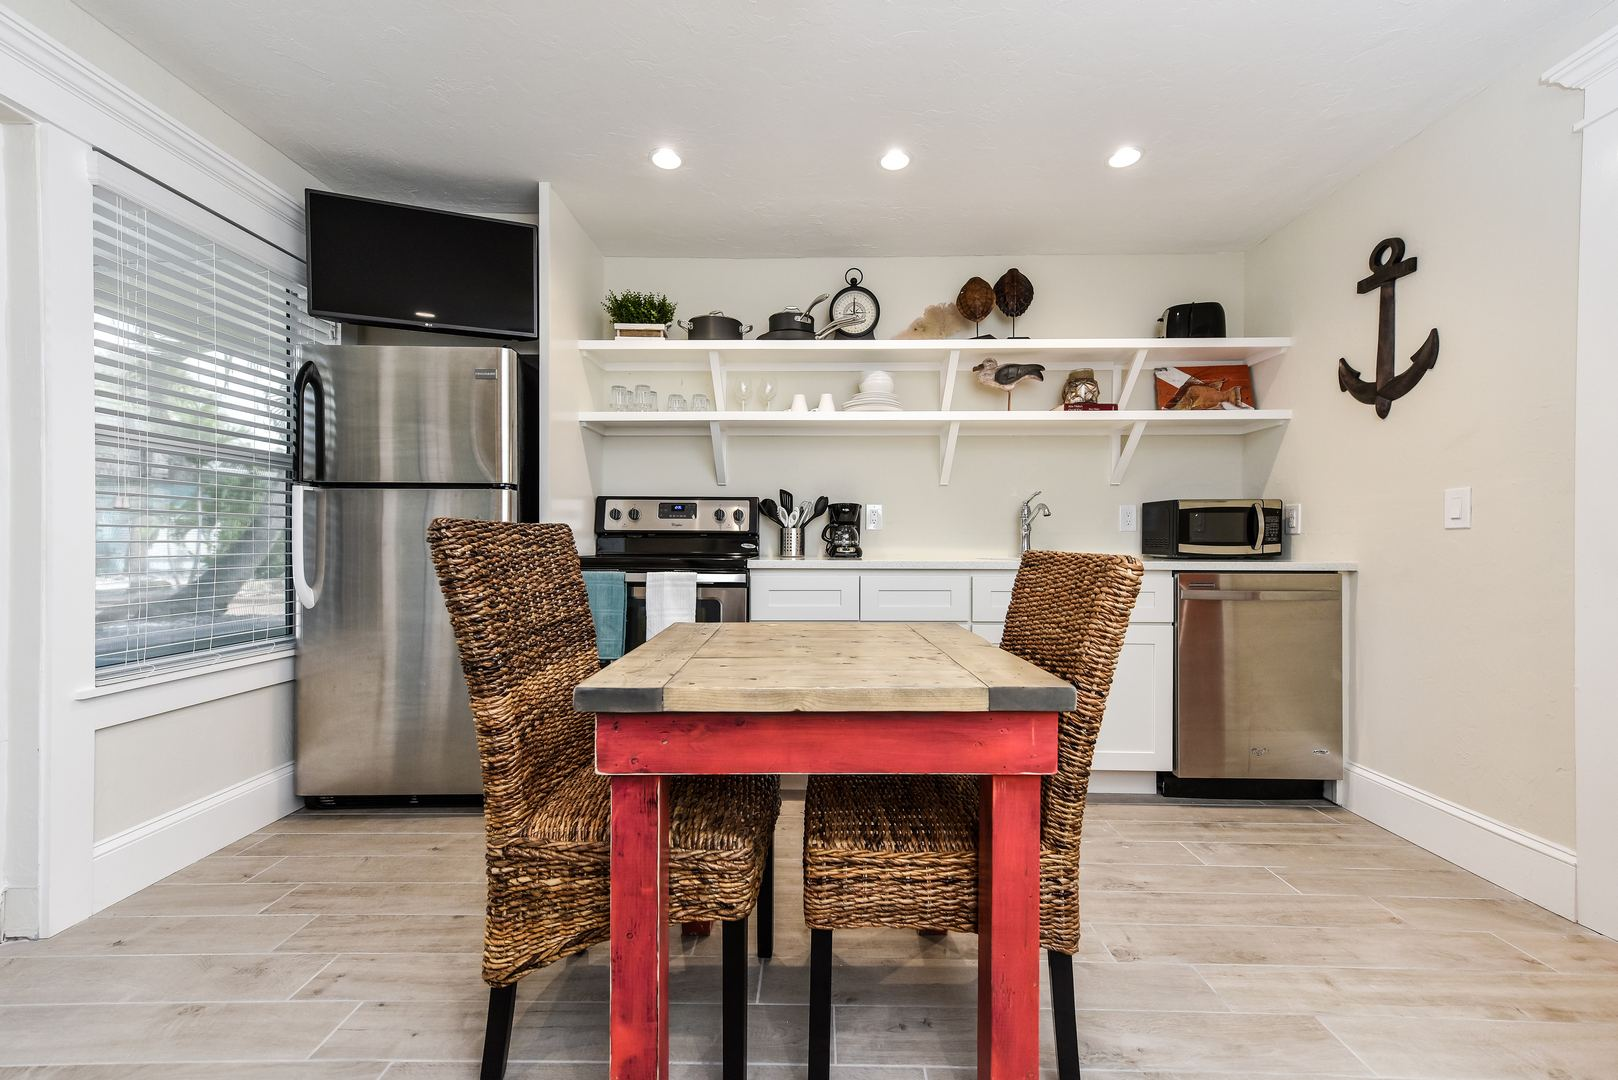 Full Kitchen with separate Dining Table